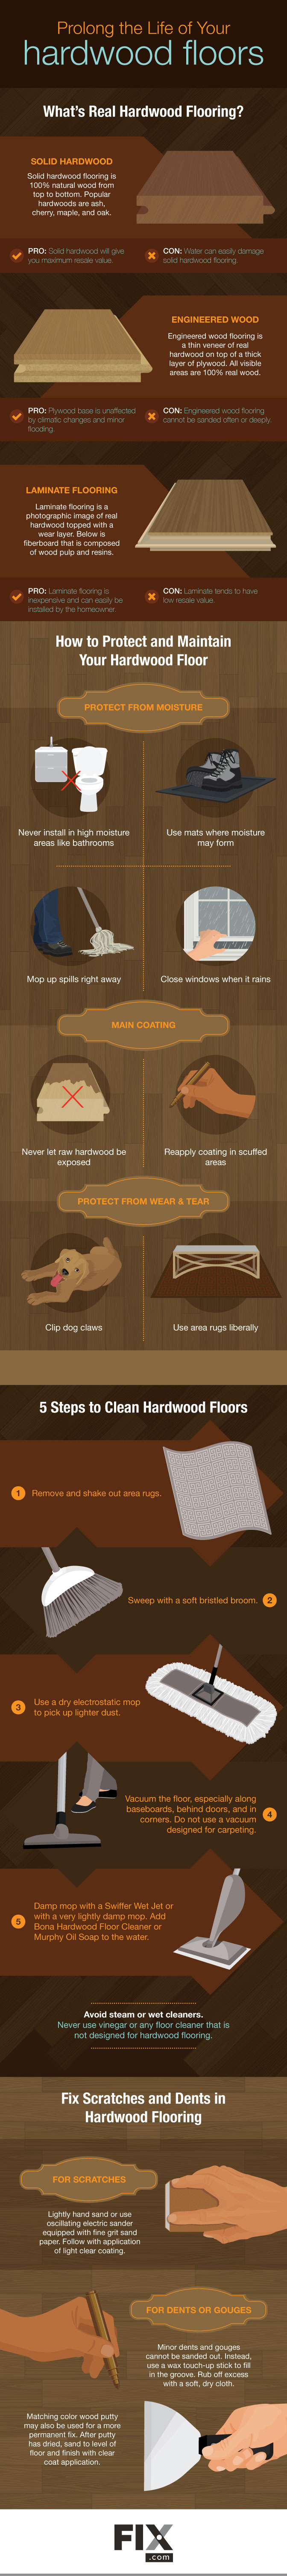 Tips to Protect Your Hardwood Floors